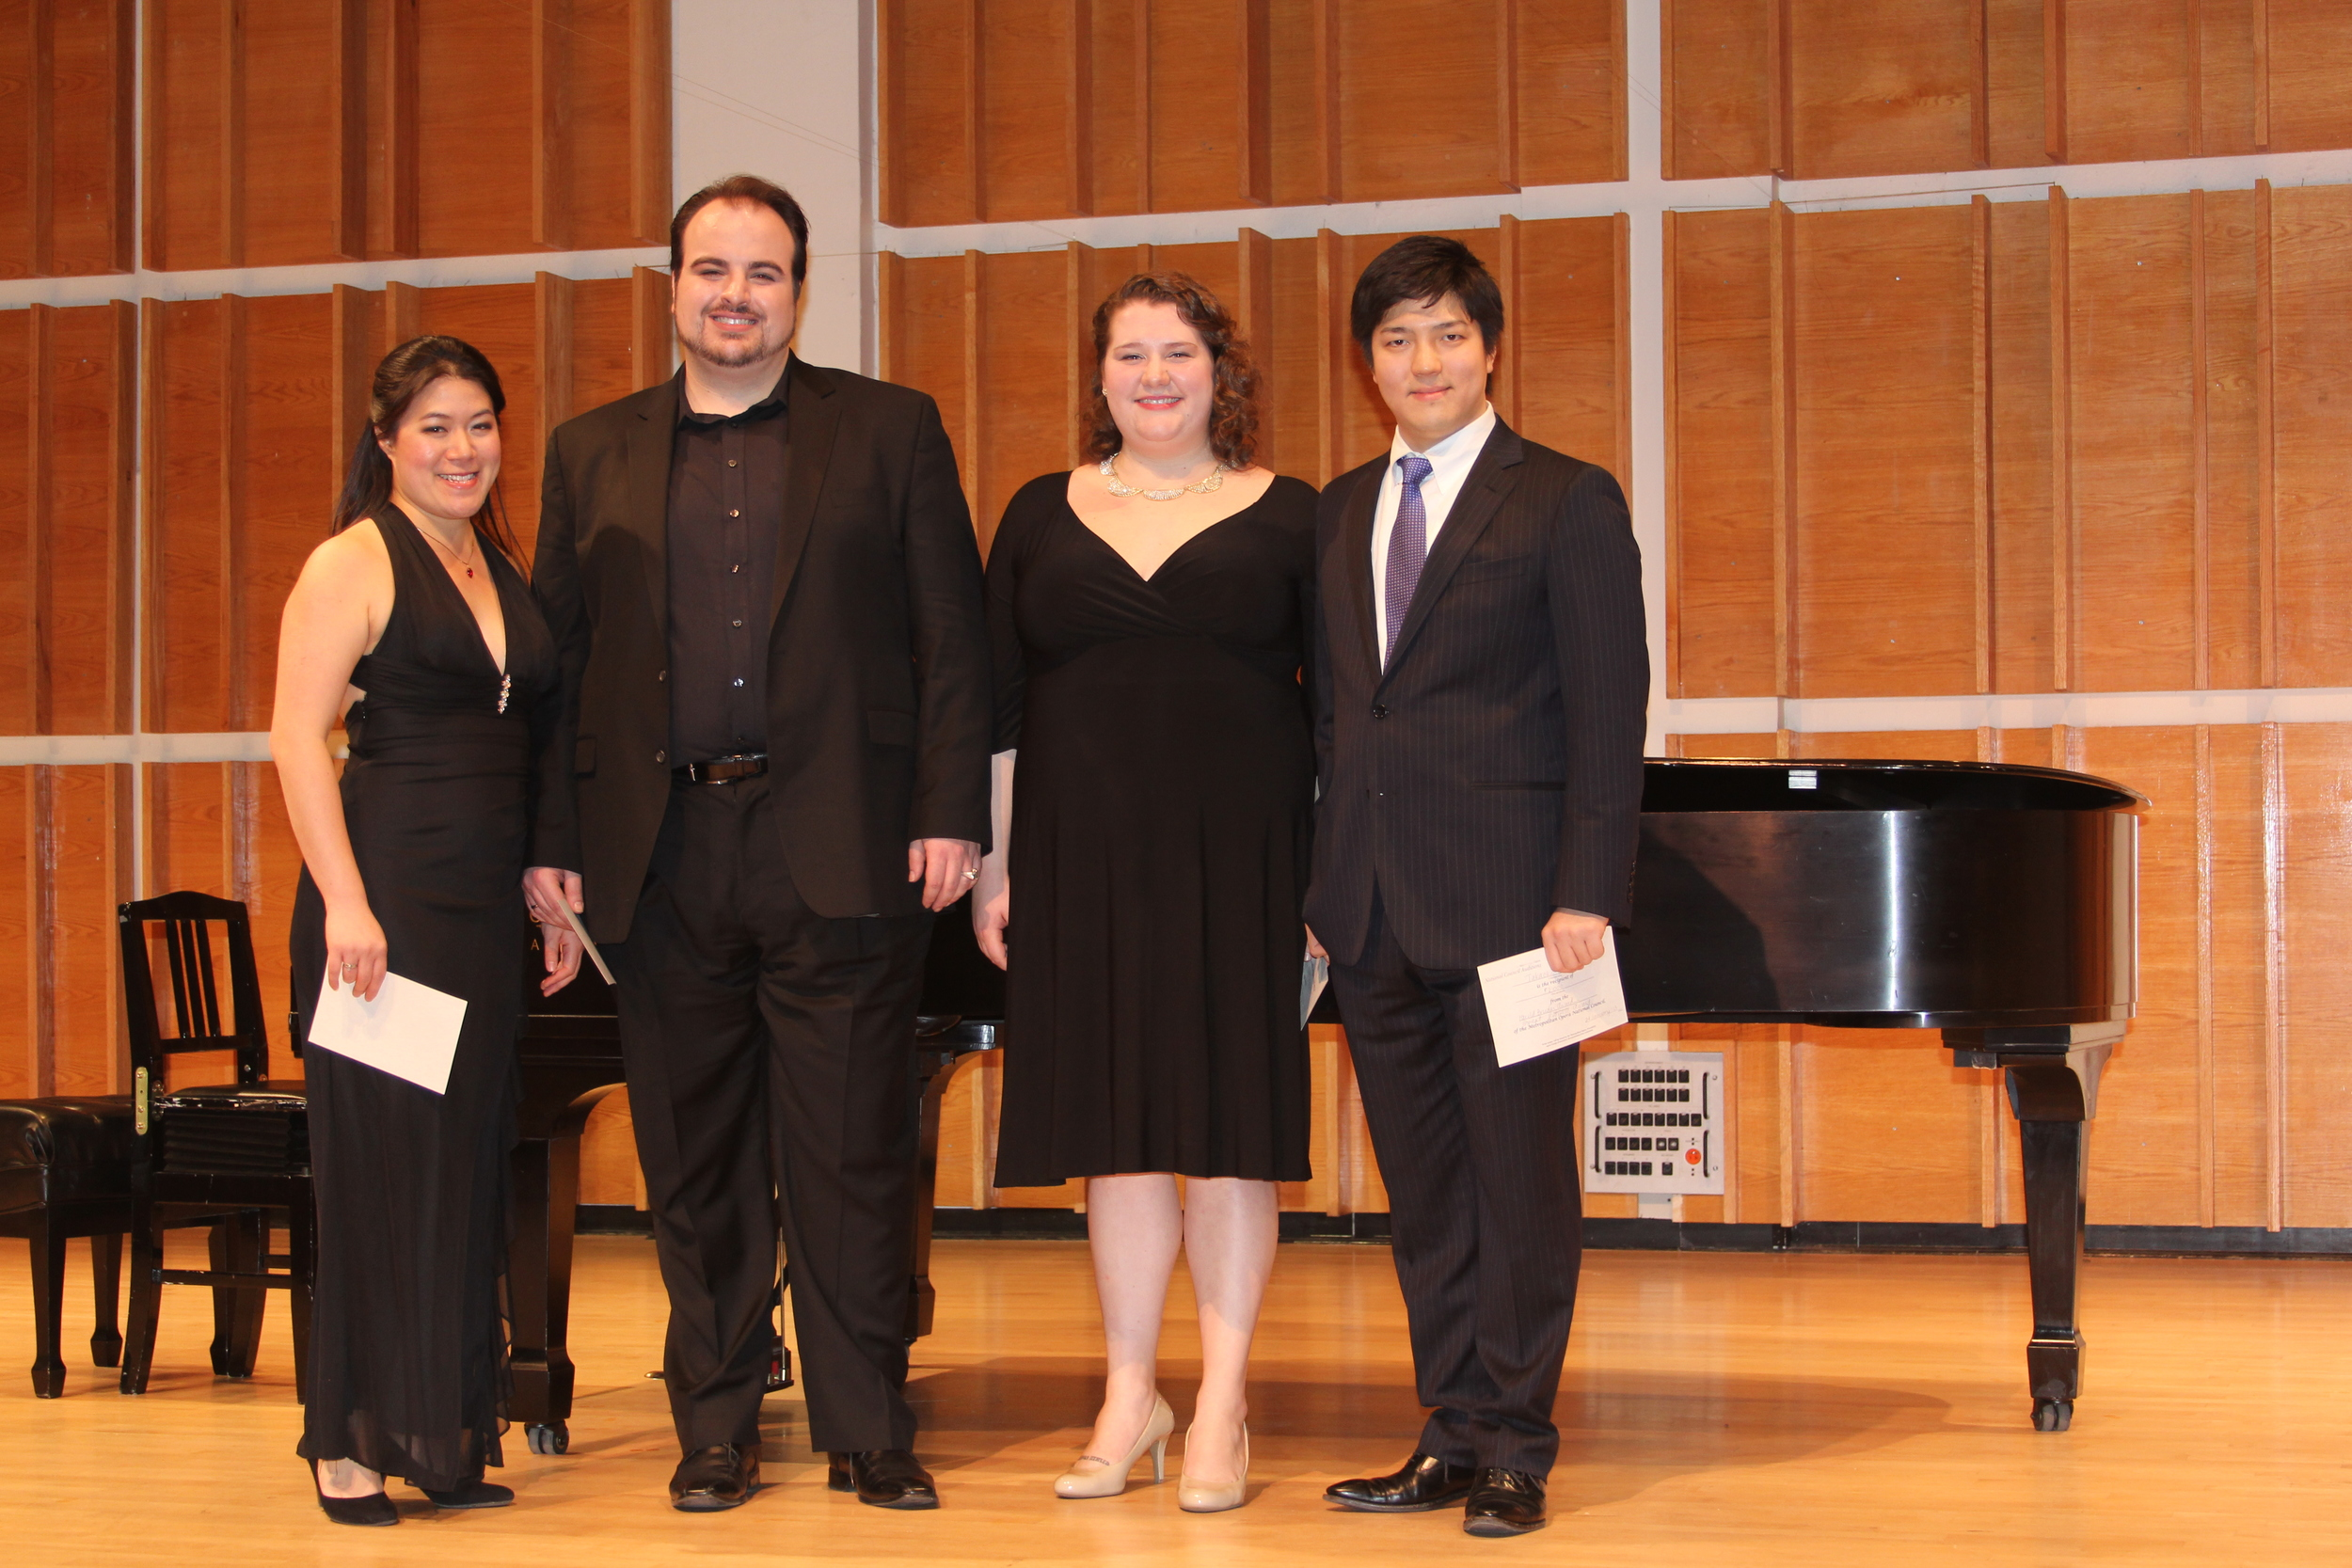 Region Winners: Karen Vuong, Matthew Anchel, Felicia Moore and Takaoki Onishi